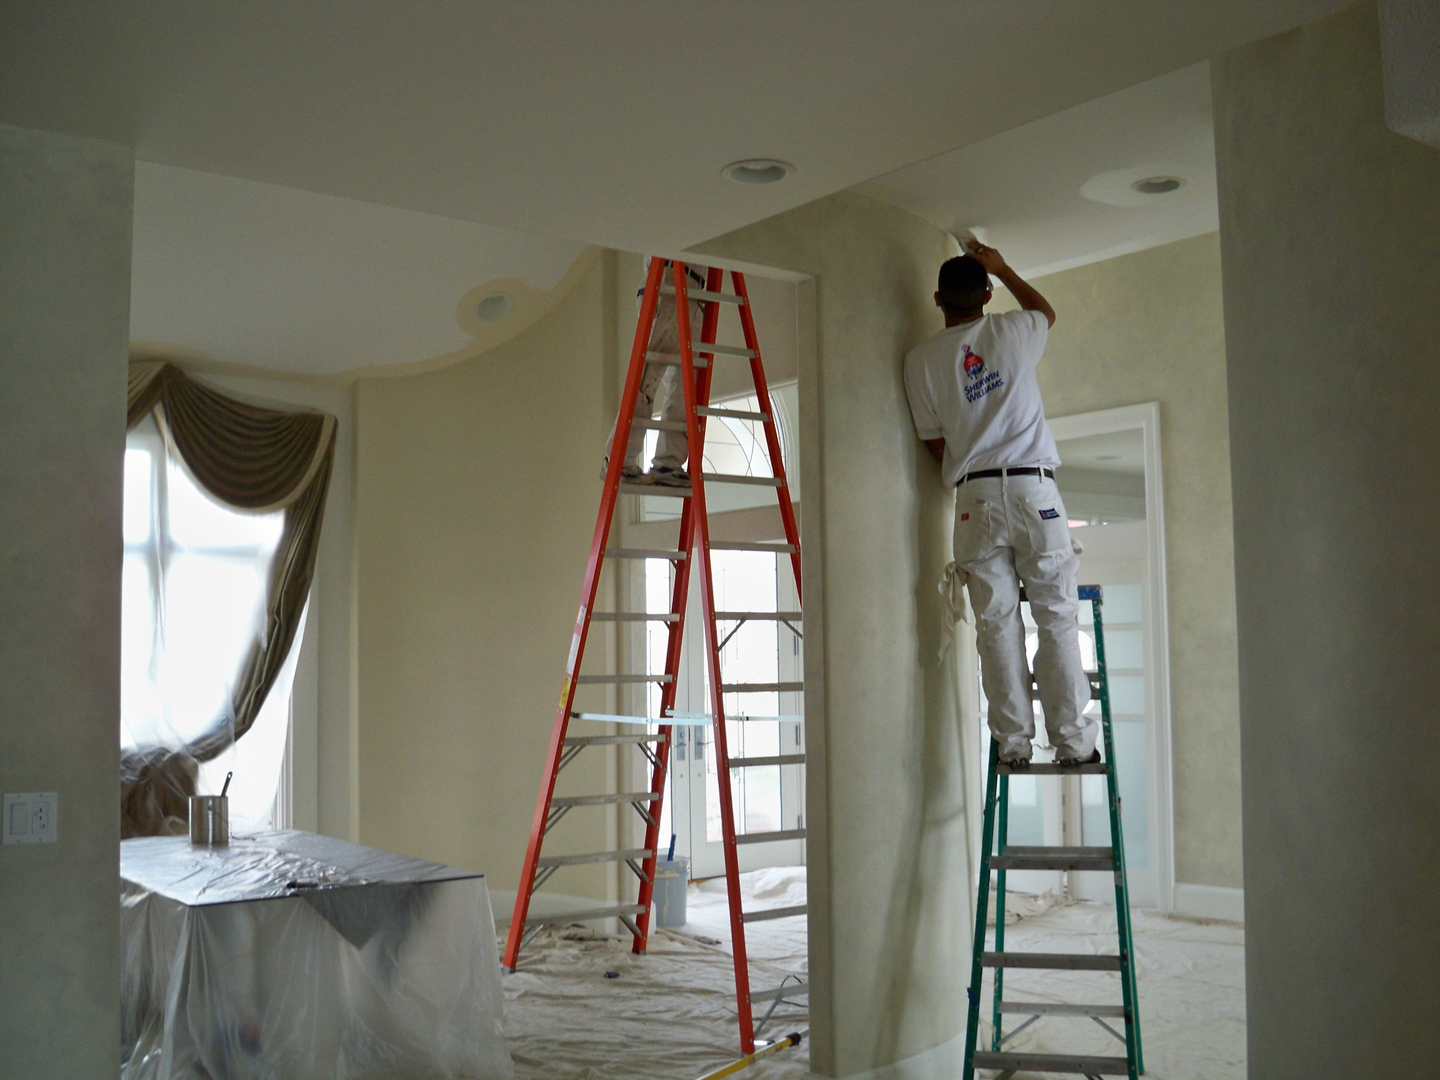 Paesano Painters Has Been Serving Atlanta The North Metro Area For Over 15 Years We Are A Local Company Who Cares About Quality Honesty And Customer